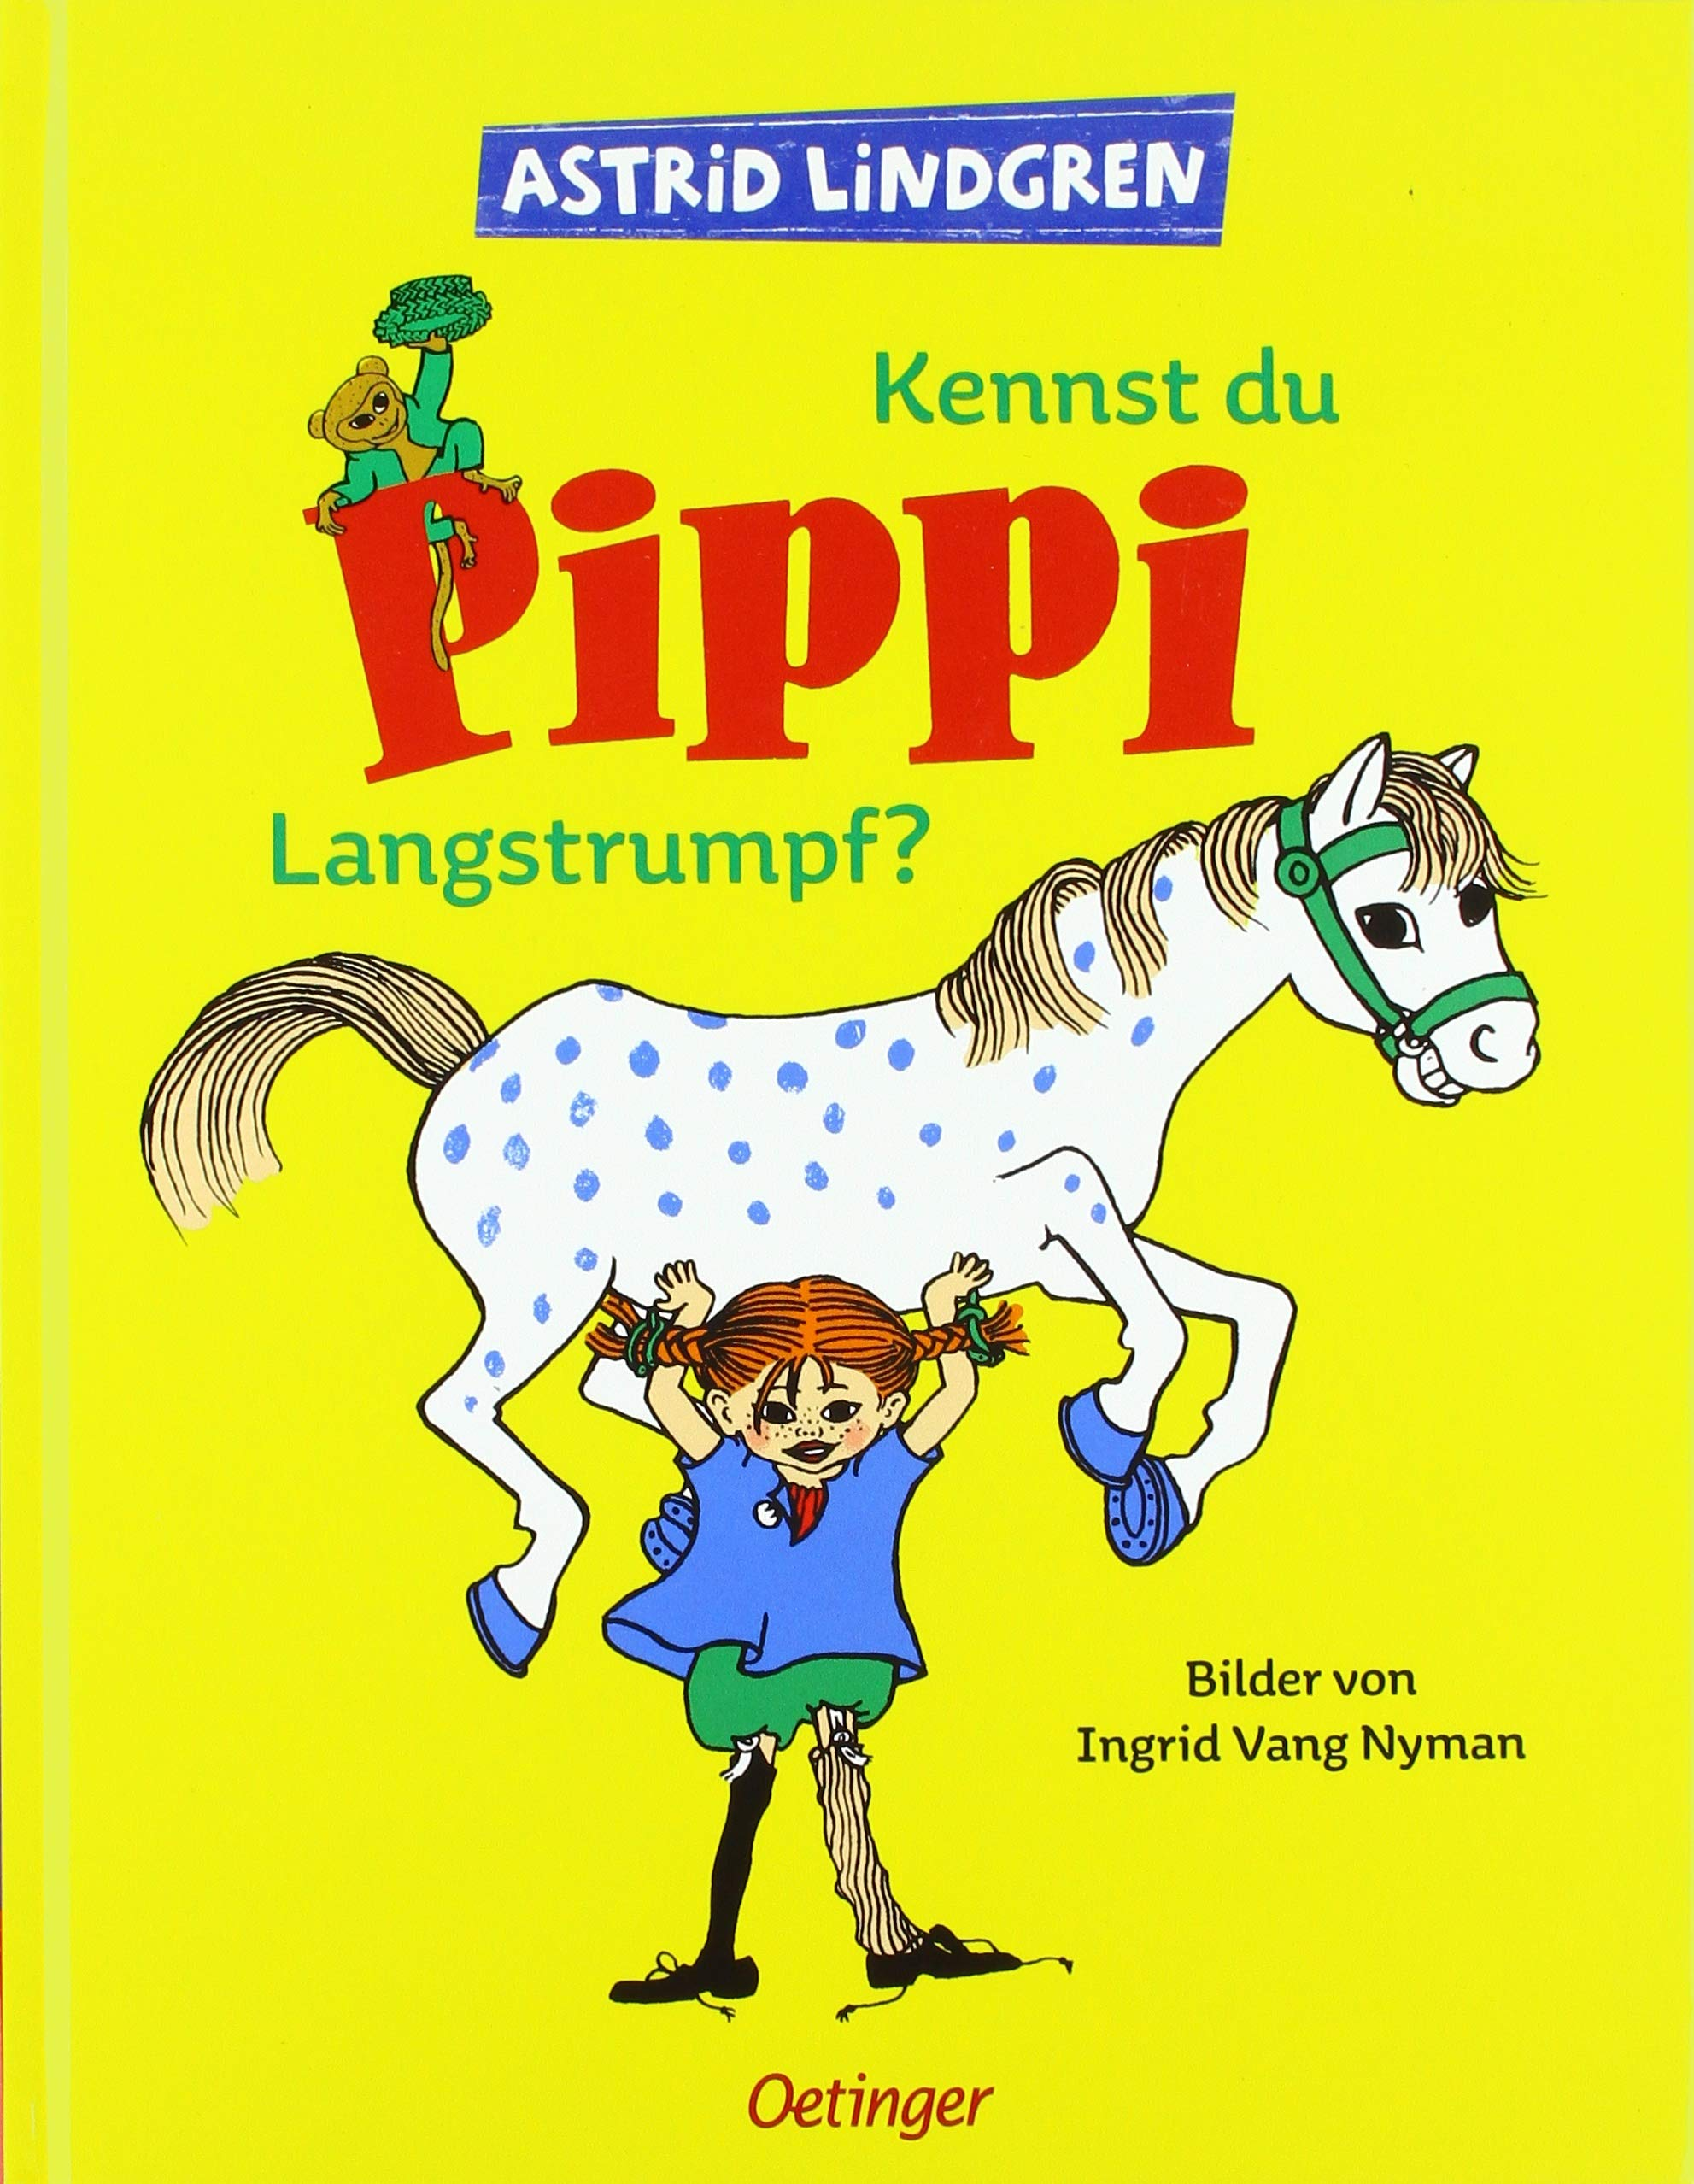 Pippi Långstrump By Astrid Lindgren - one of the top 10 translated books in the world